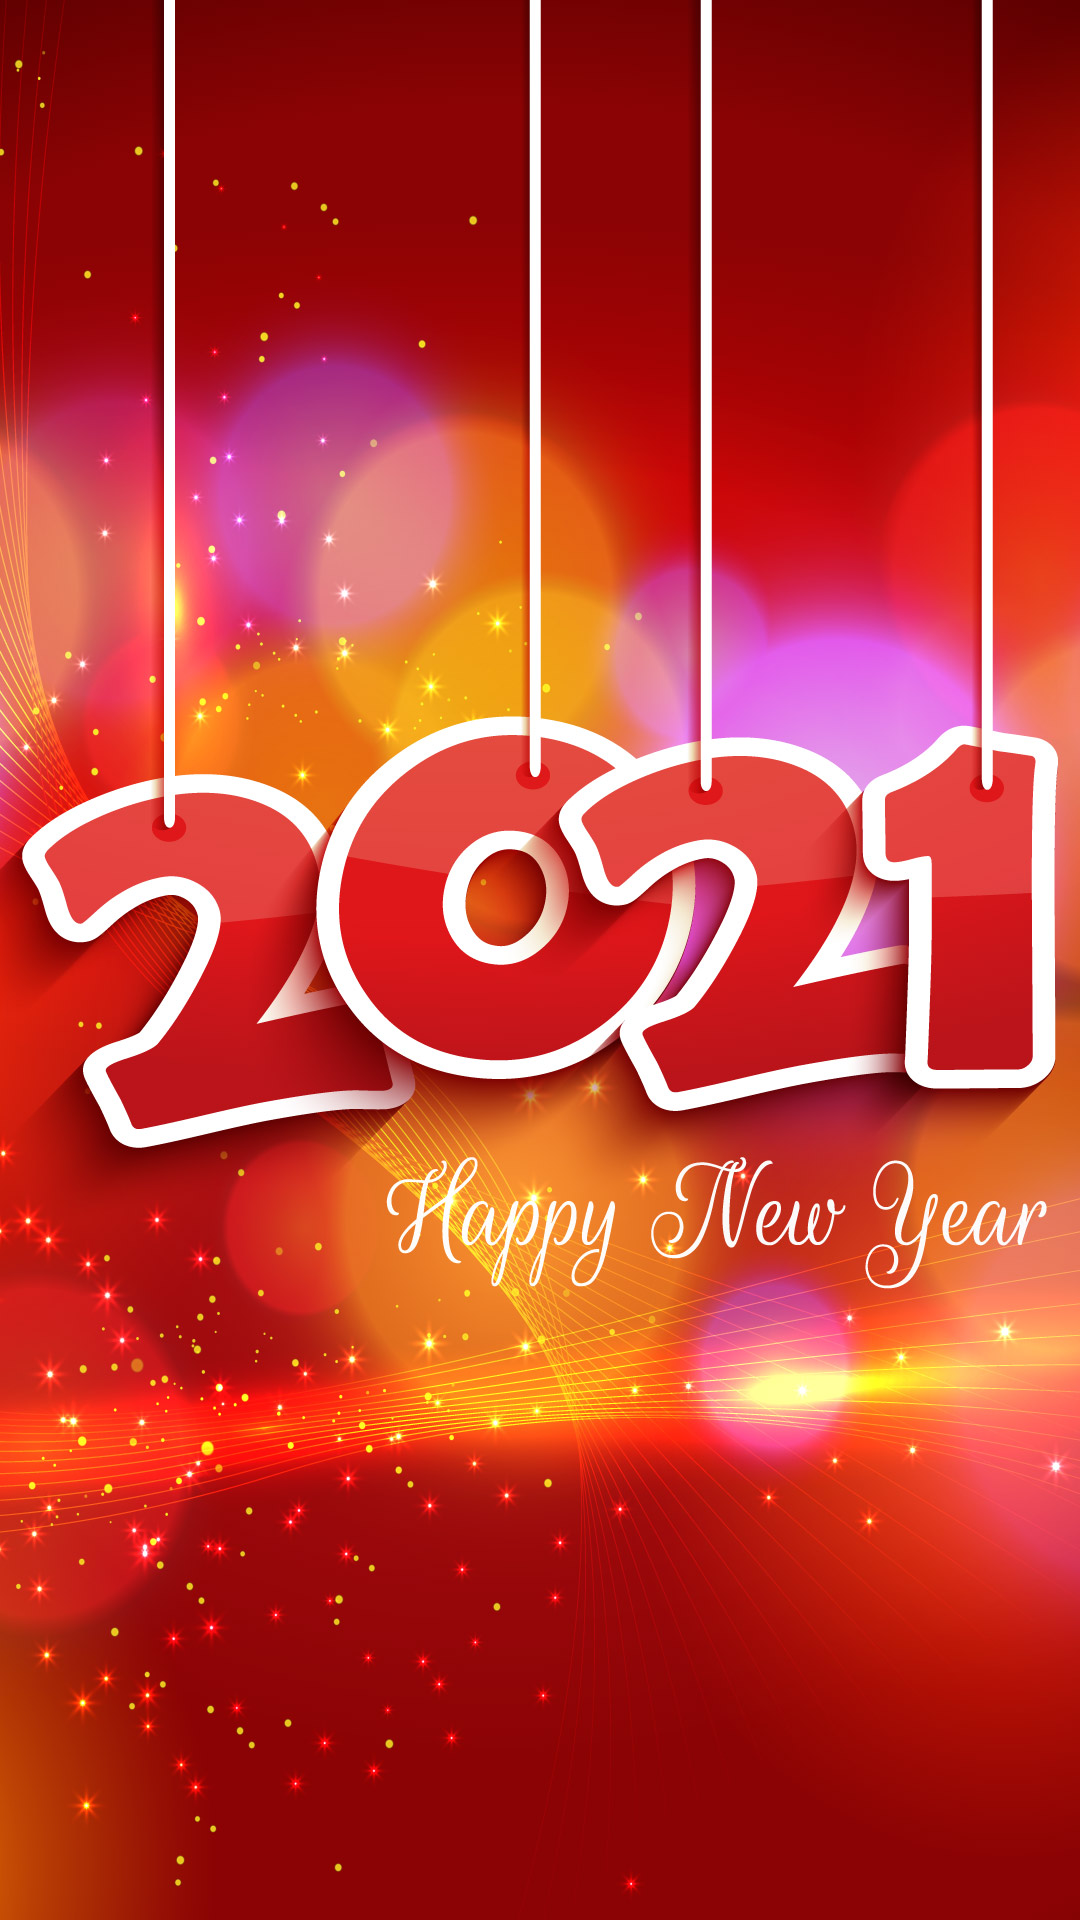 Latest New Year 2021 Wallpapers and Images for iPhone X and iPad 1080x1920